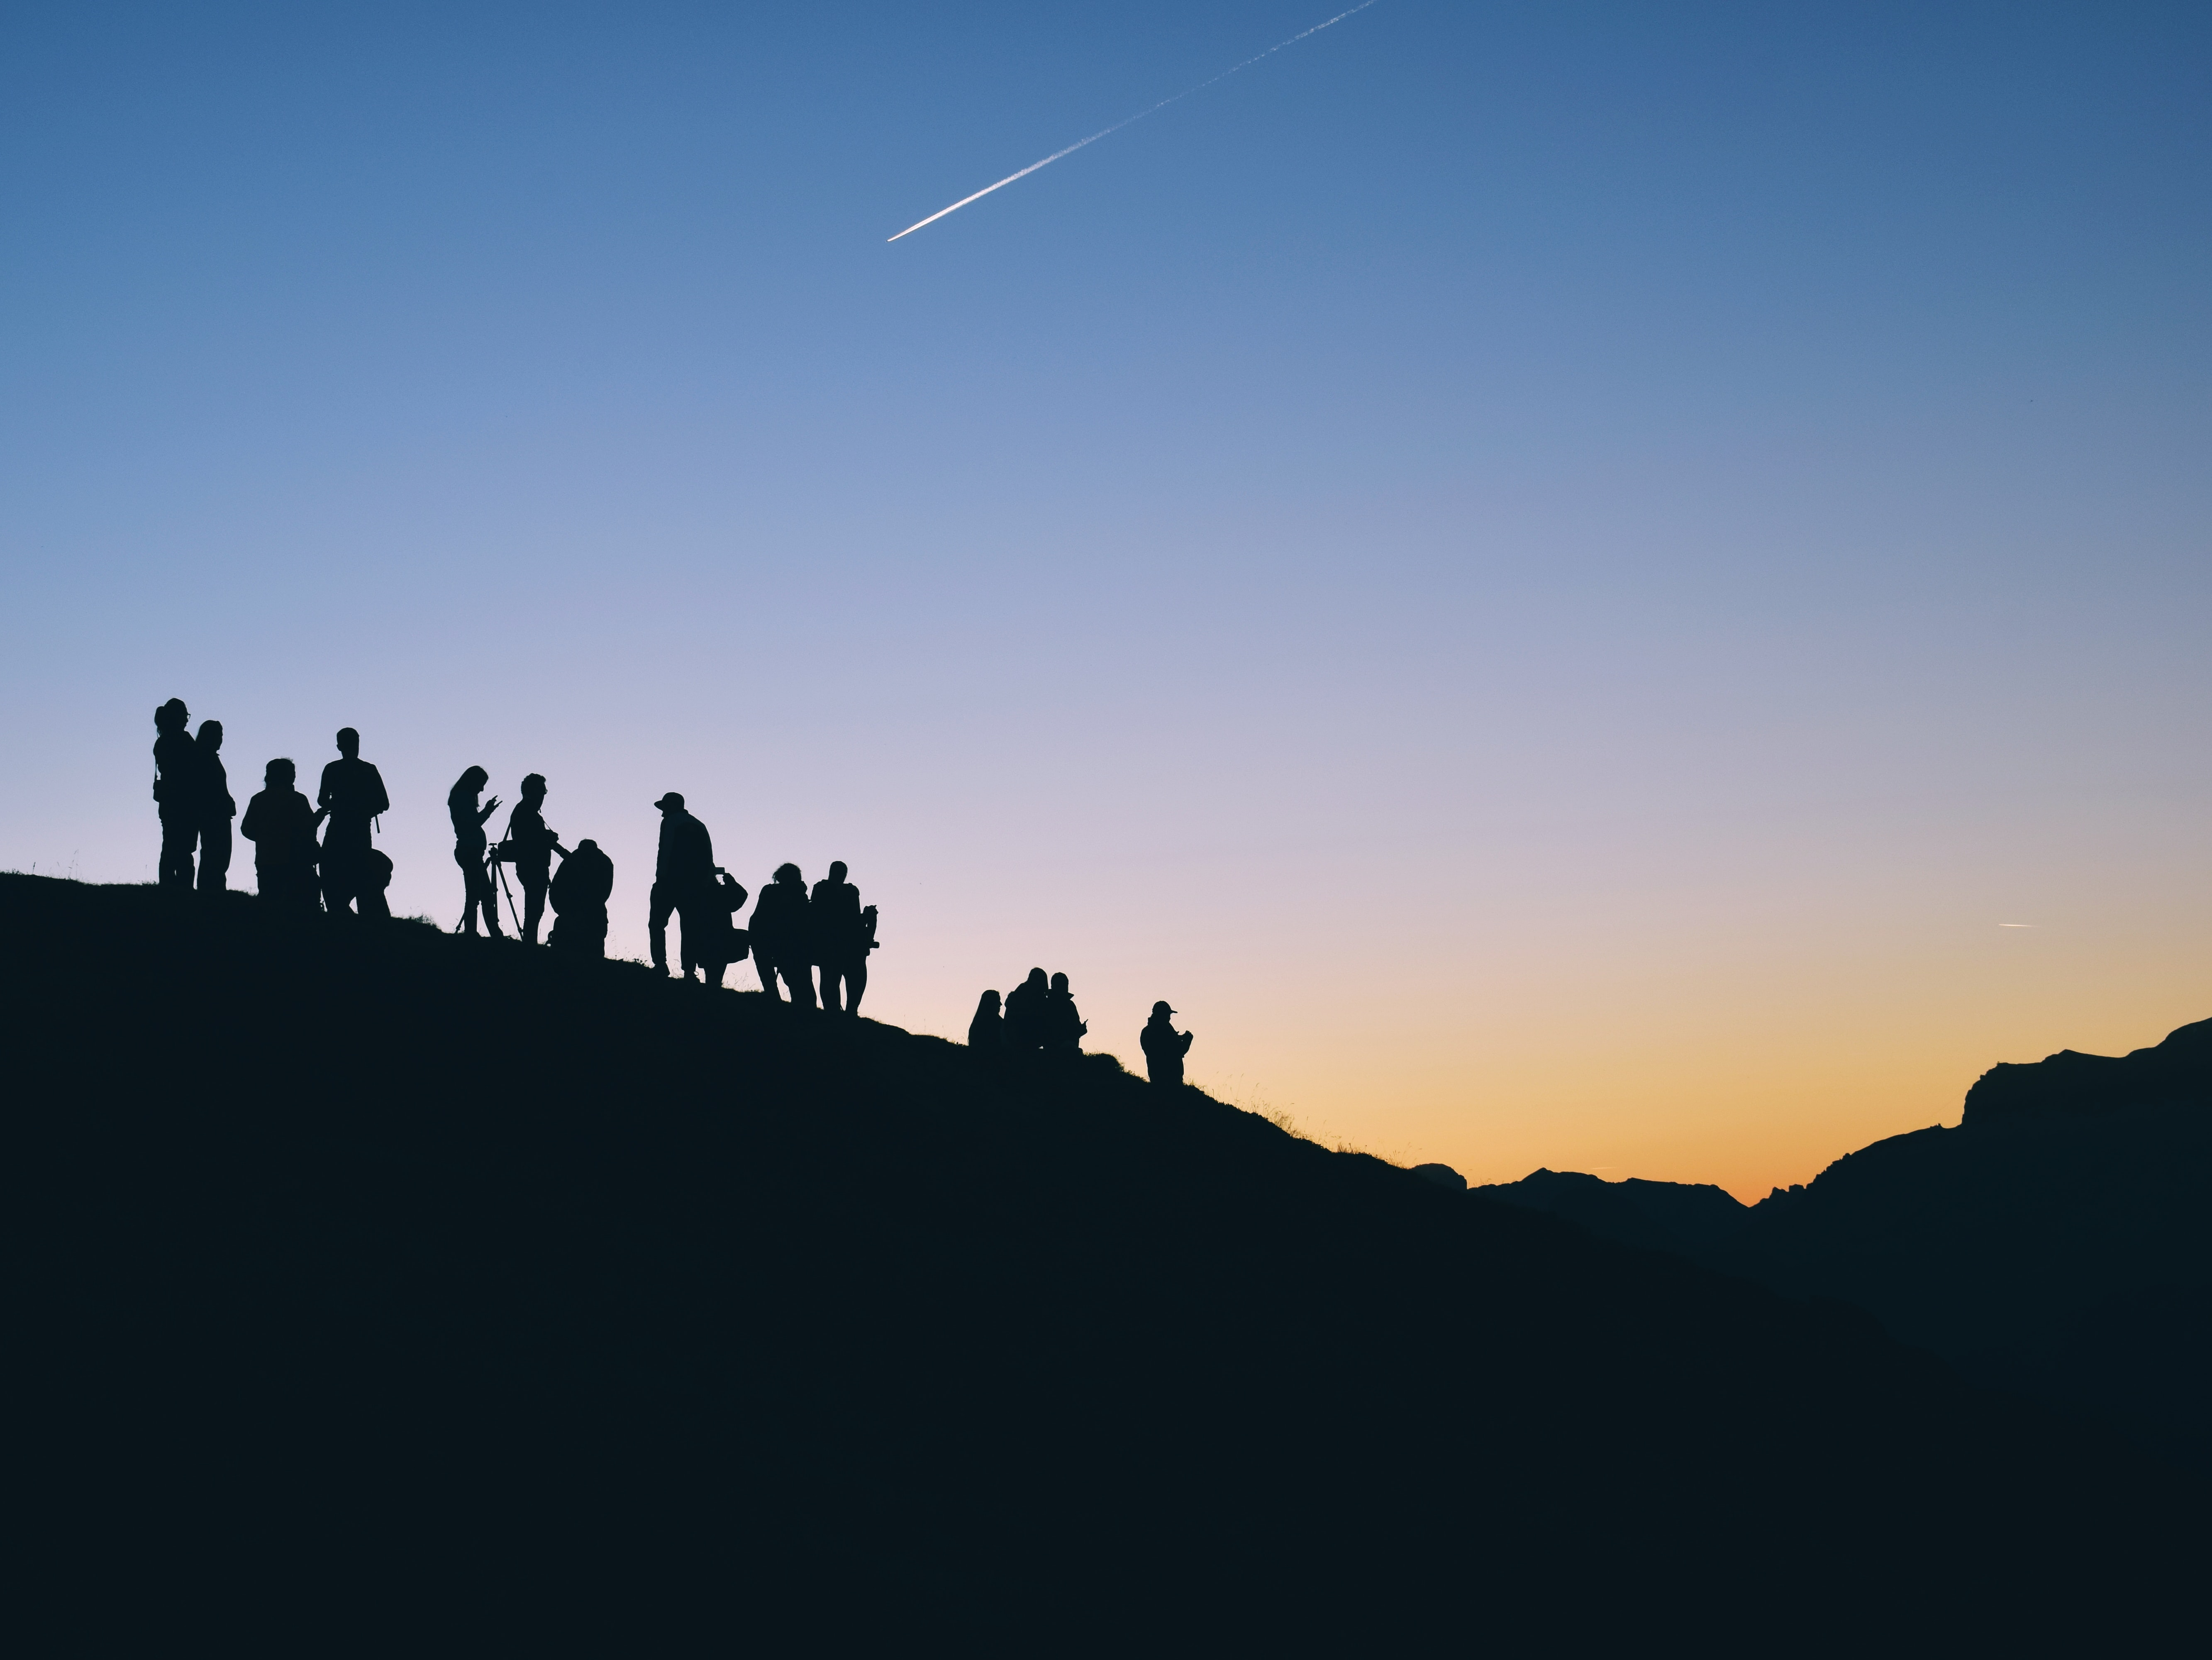 silhouette of people on mountain under falling satr